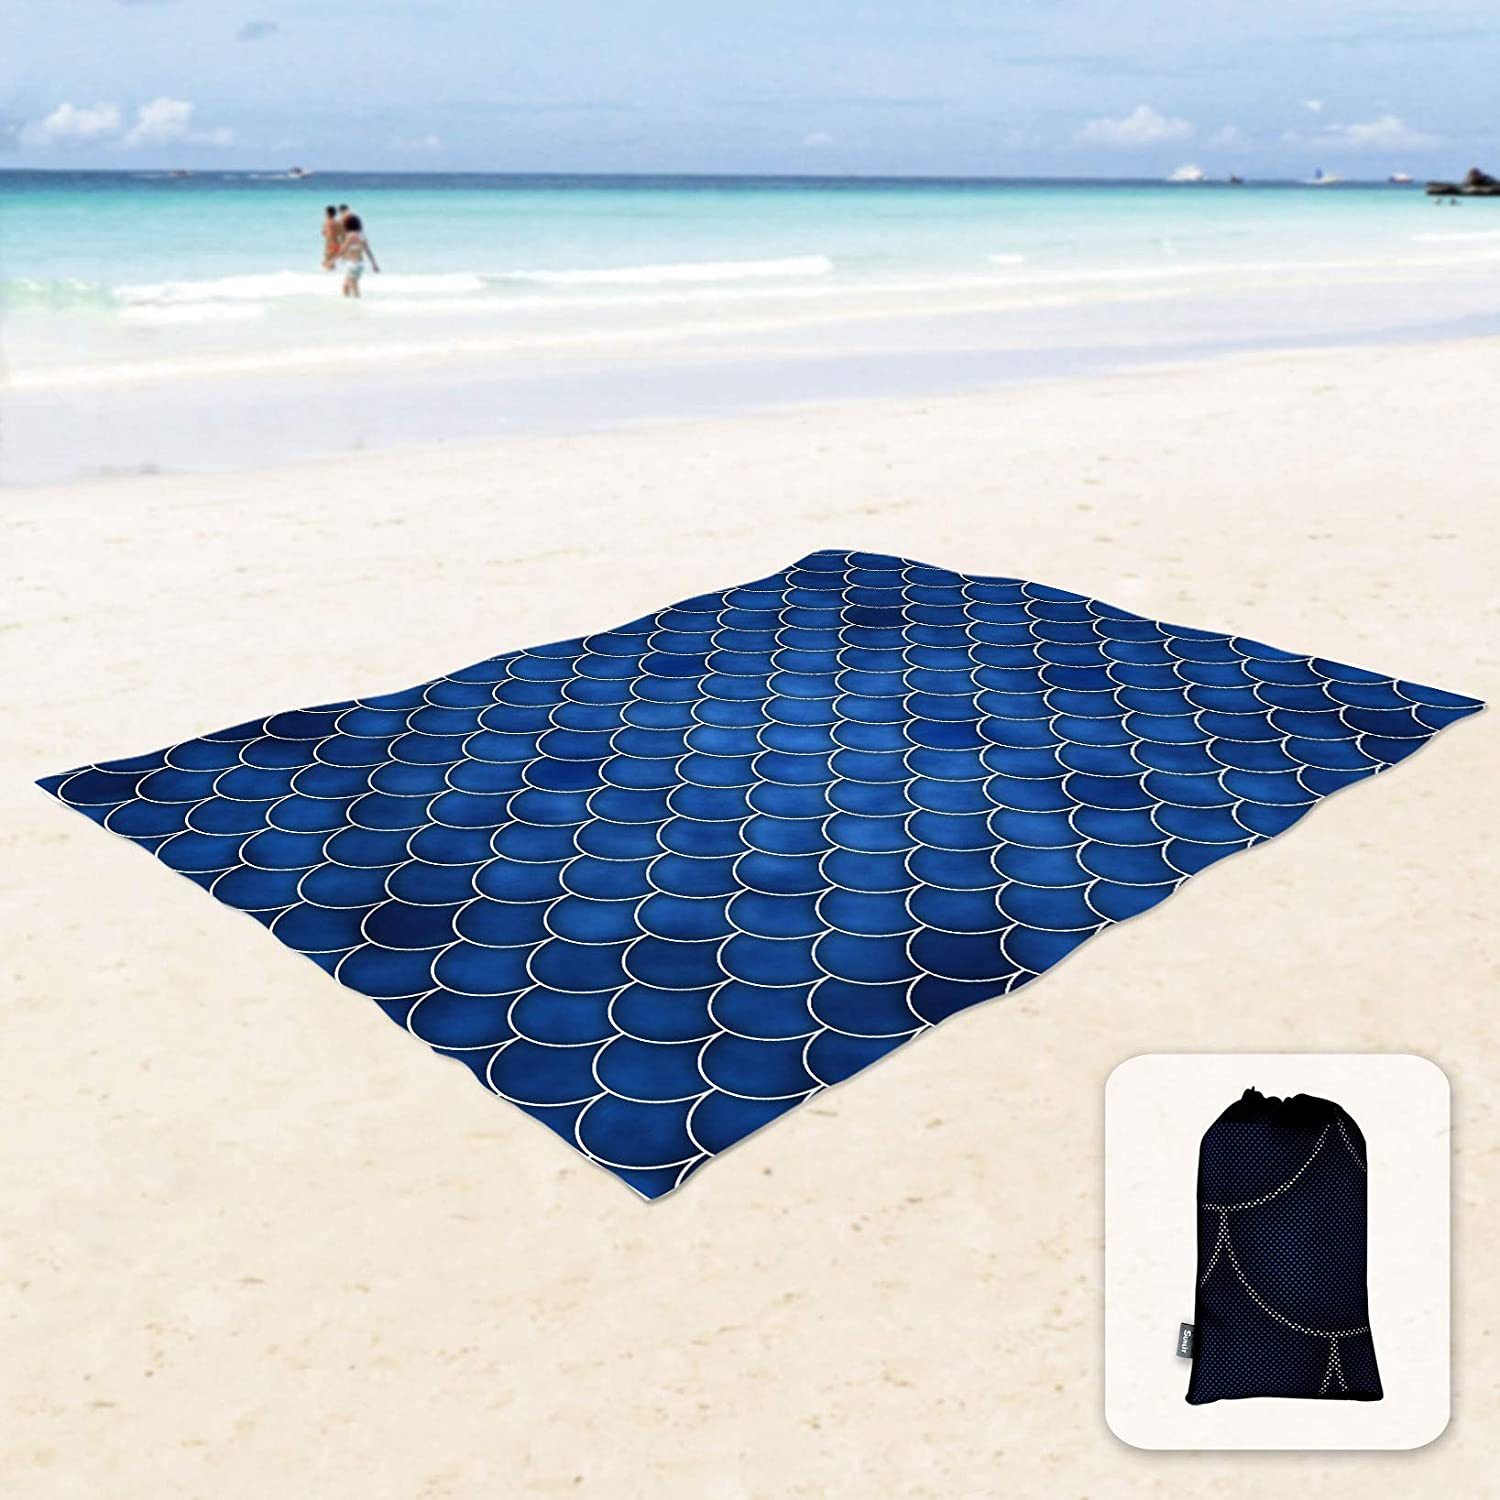 Sunlit Silky Soft Sand Proof Beach Blanket Sand Proof Mat with Corner Pockets and Mesh Bag for Beach Party, Travel, Camping and Outdoor Music Festival, Dark Blue Mermaid Tail Scale